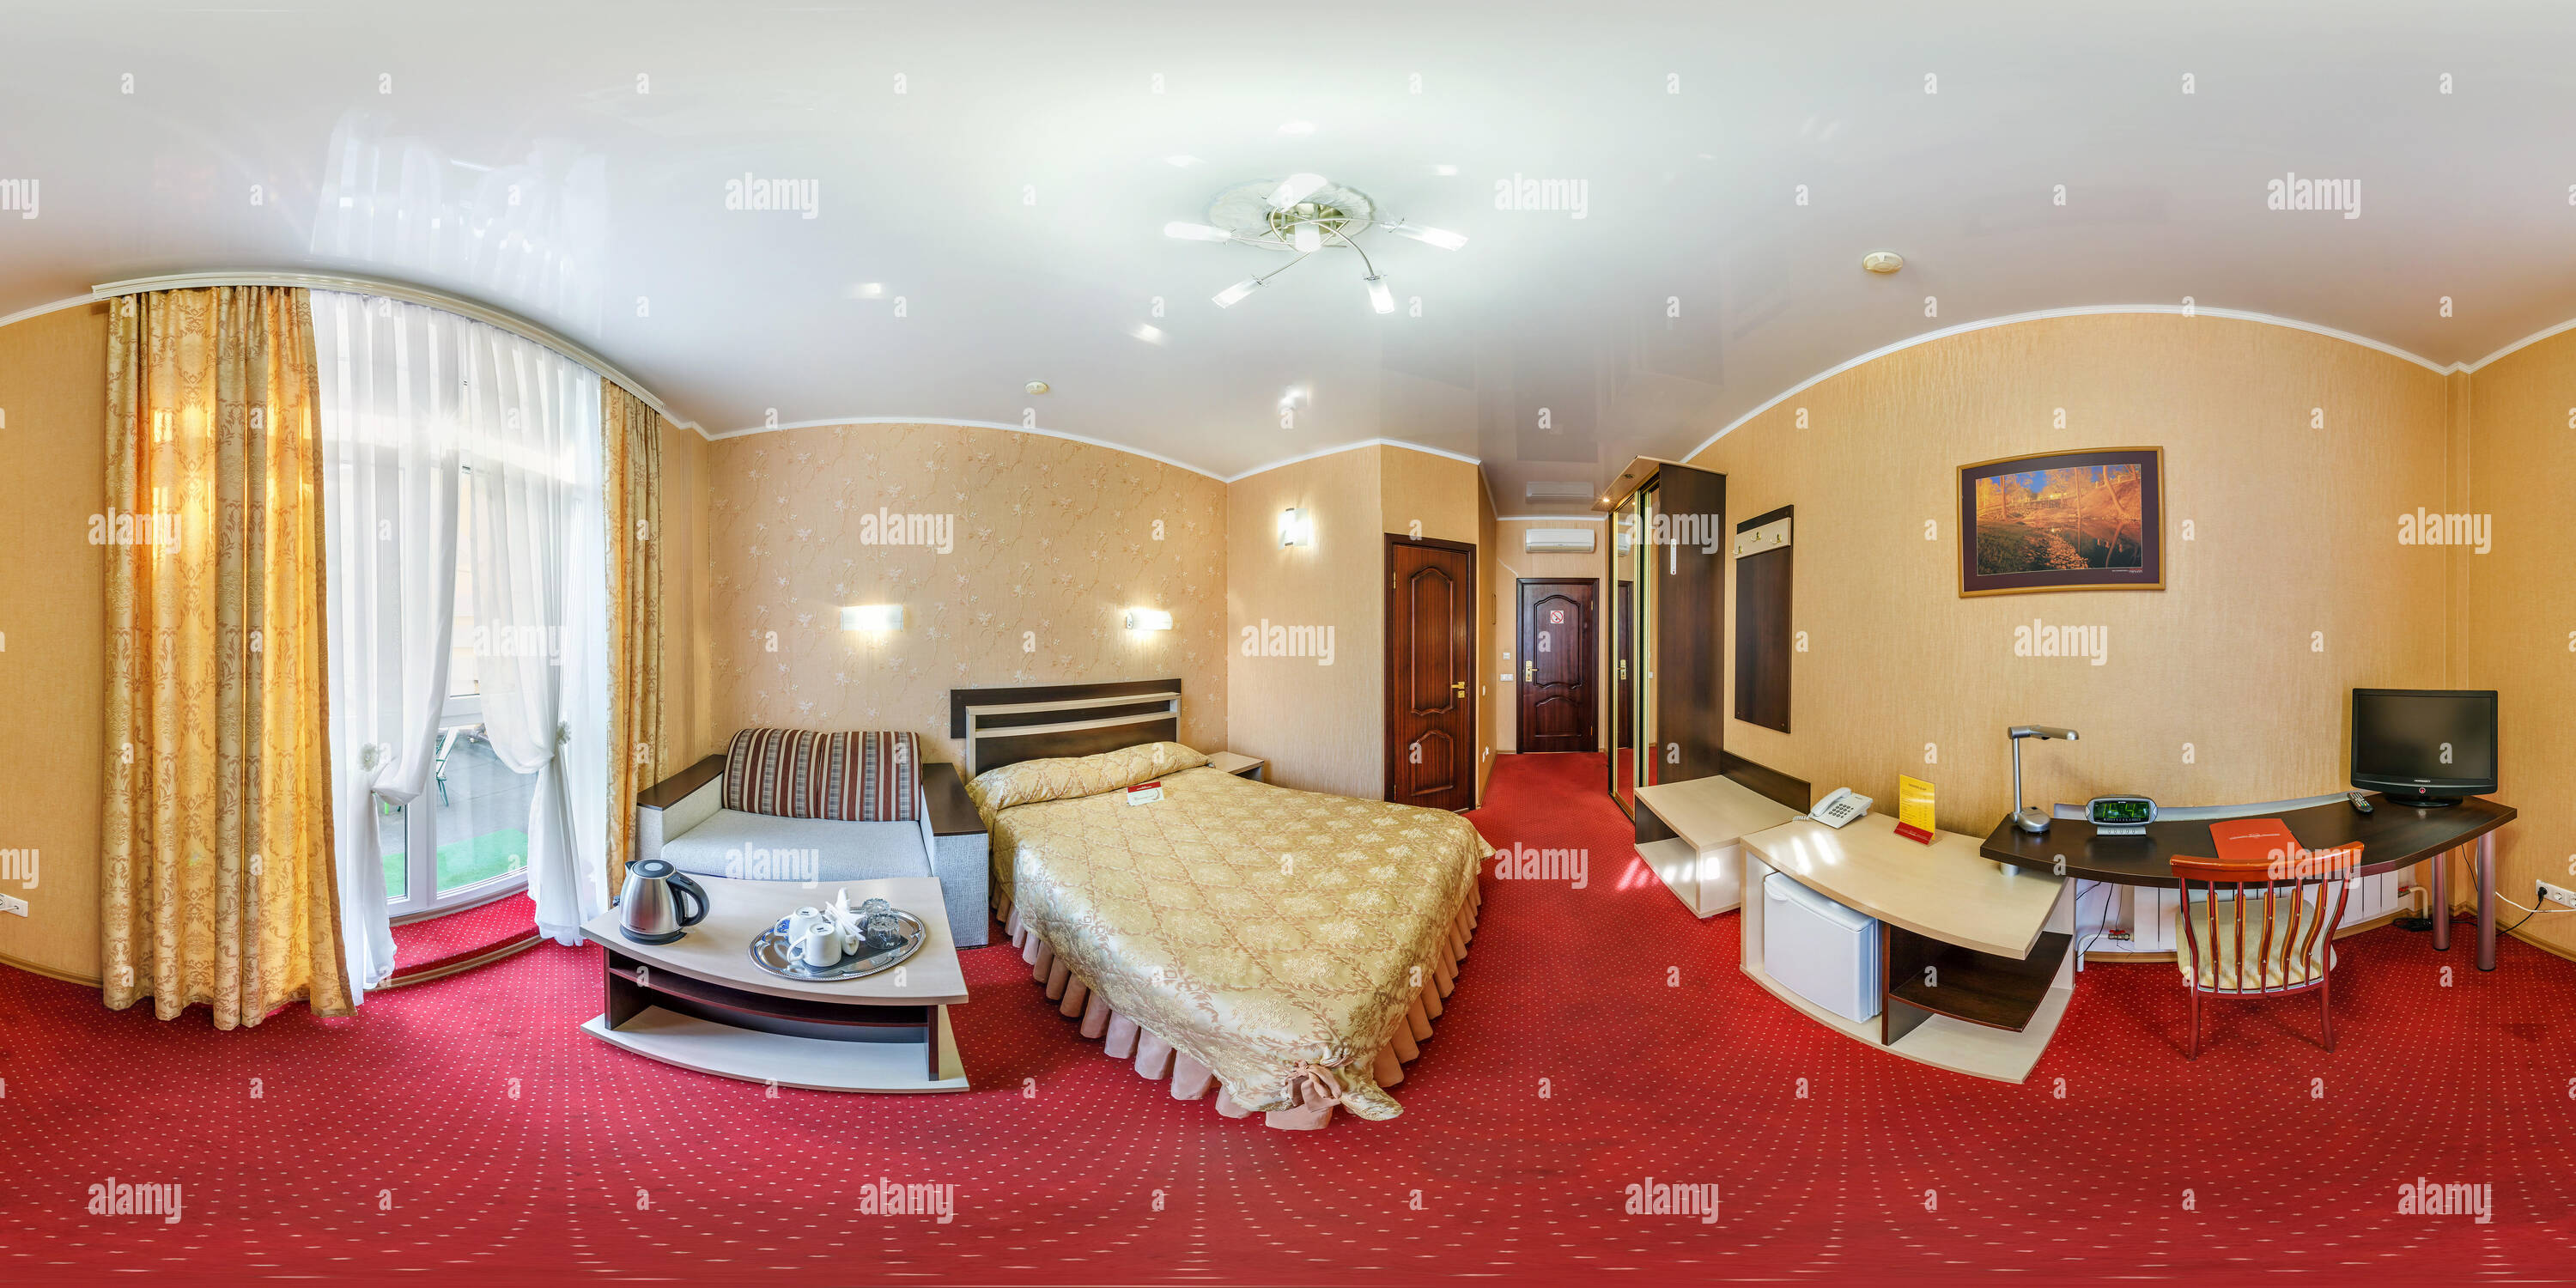 360 View Of Minsk Belarus August 2017 Full Spherical Seamless Hdr Panorama 360 Degrees Angle View In Interior Bedroom Of Modern Flat Apartments Of Hotel In Alamy